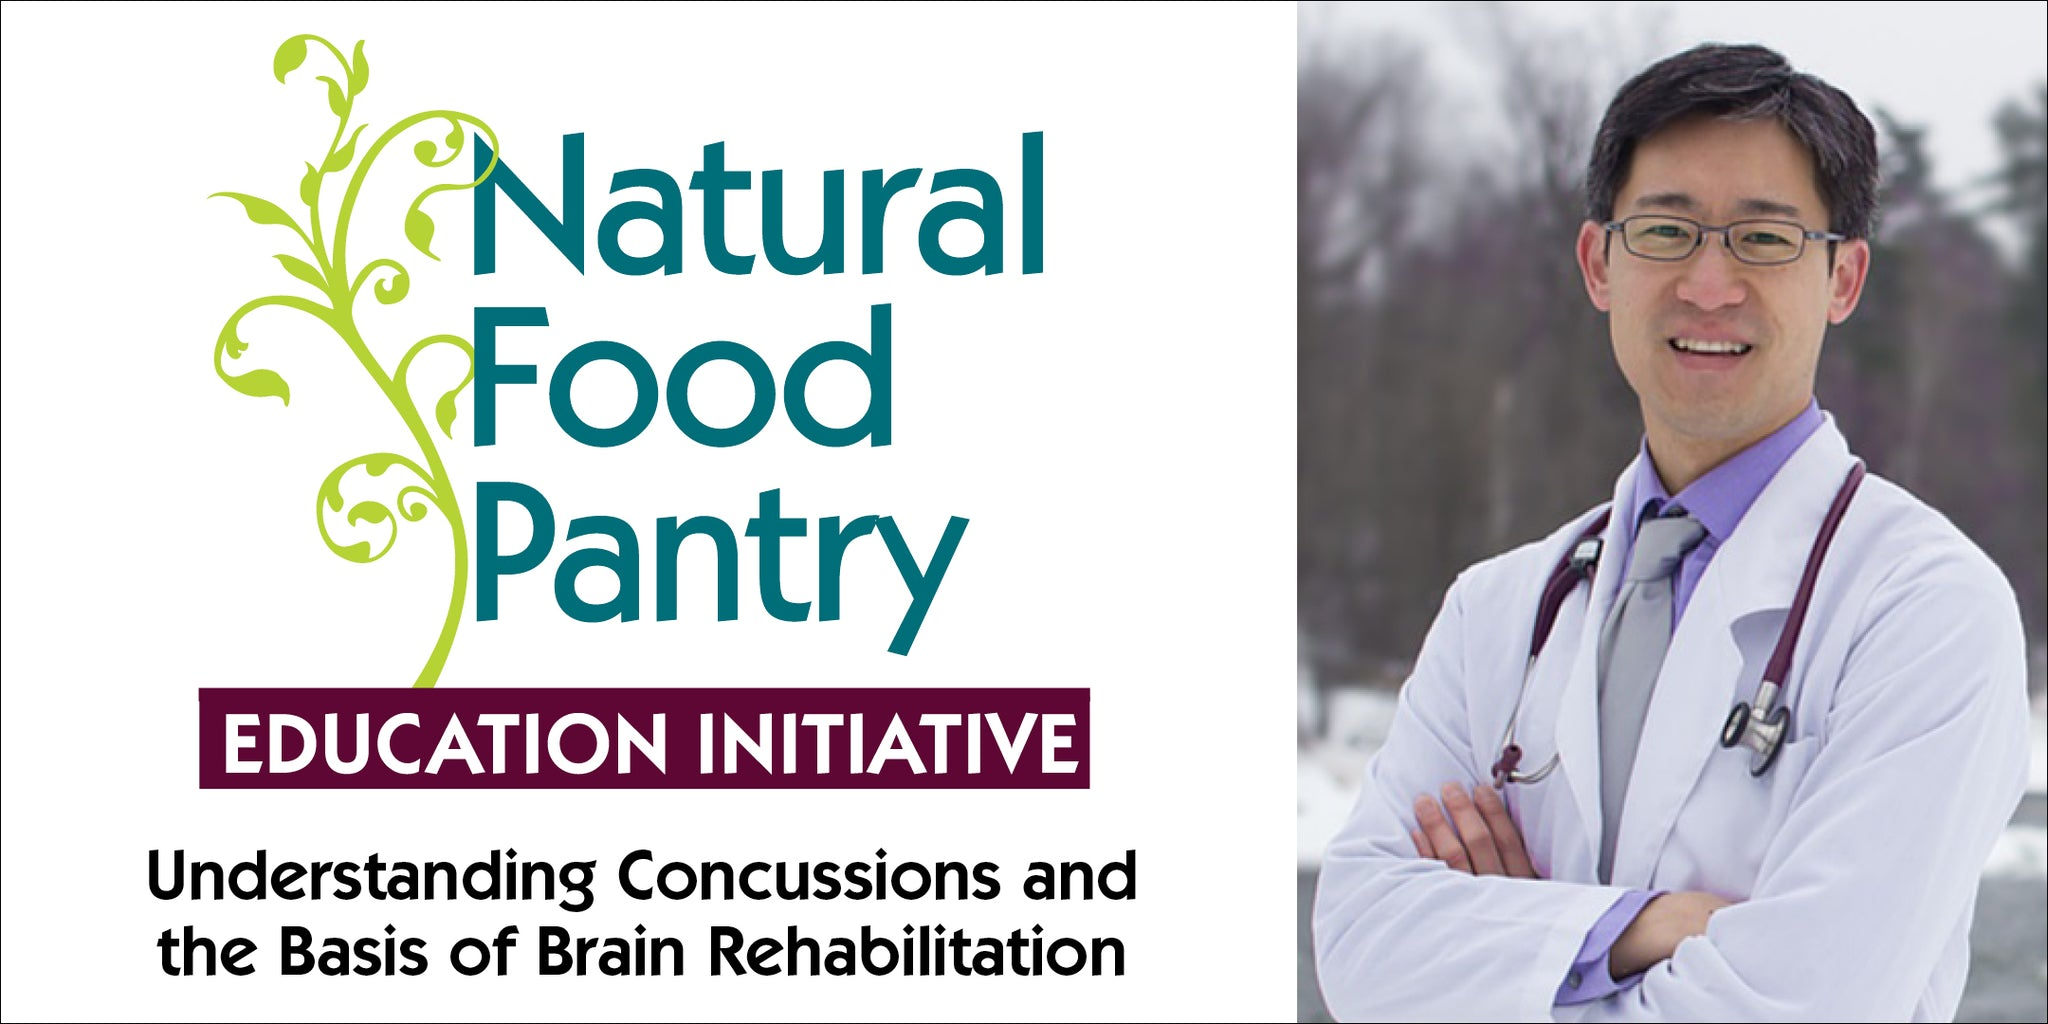 Feb 28: Understanding Concussions and the Basis of Brain Rehabilitation